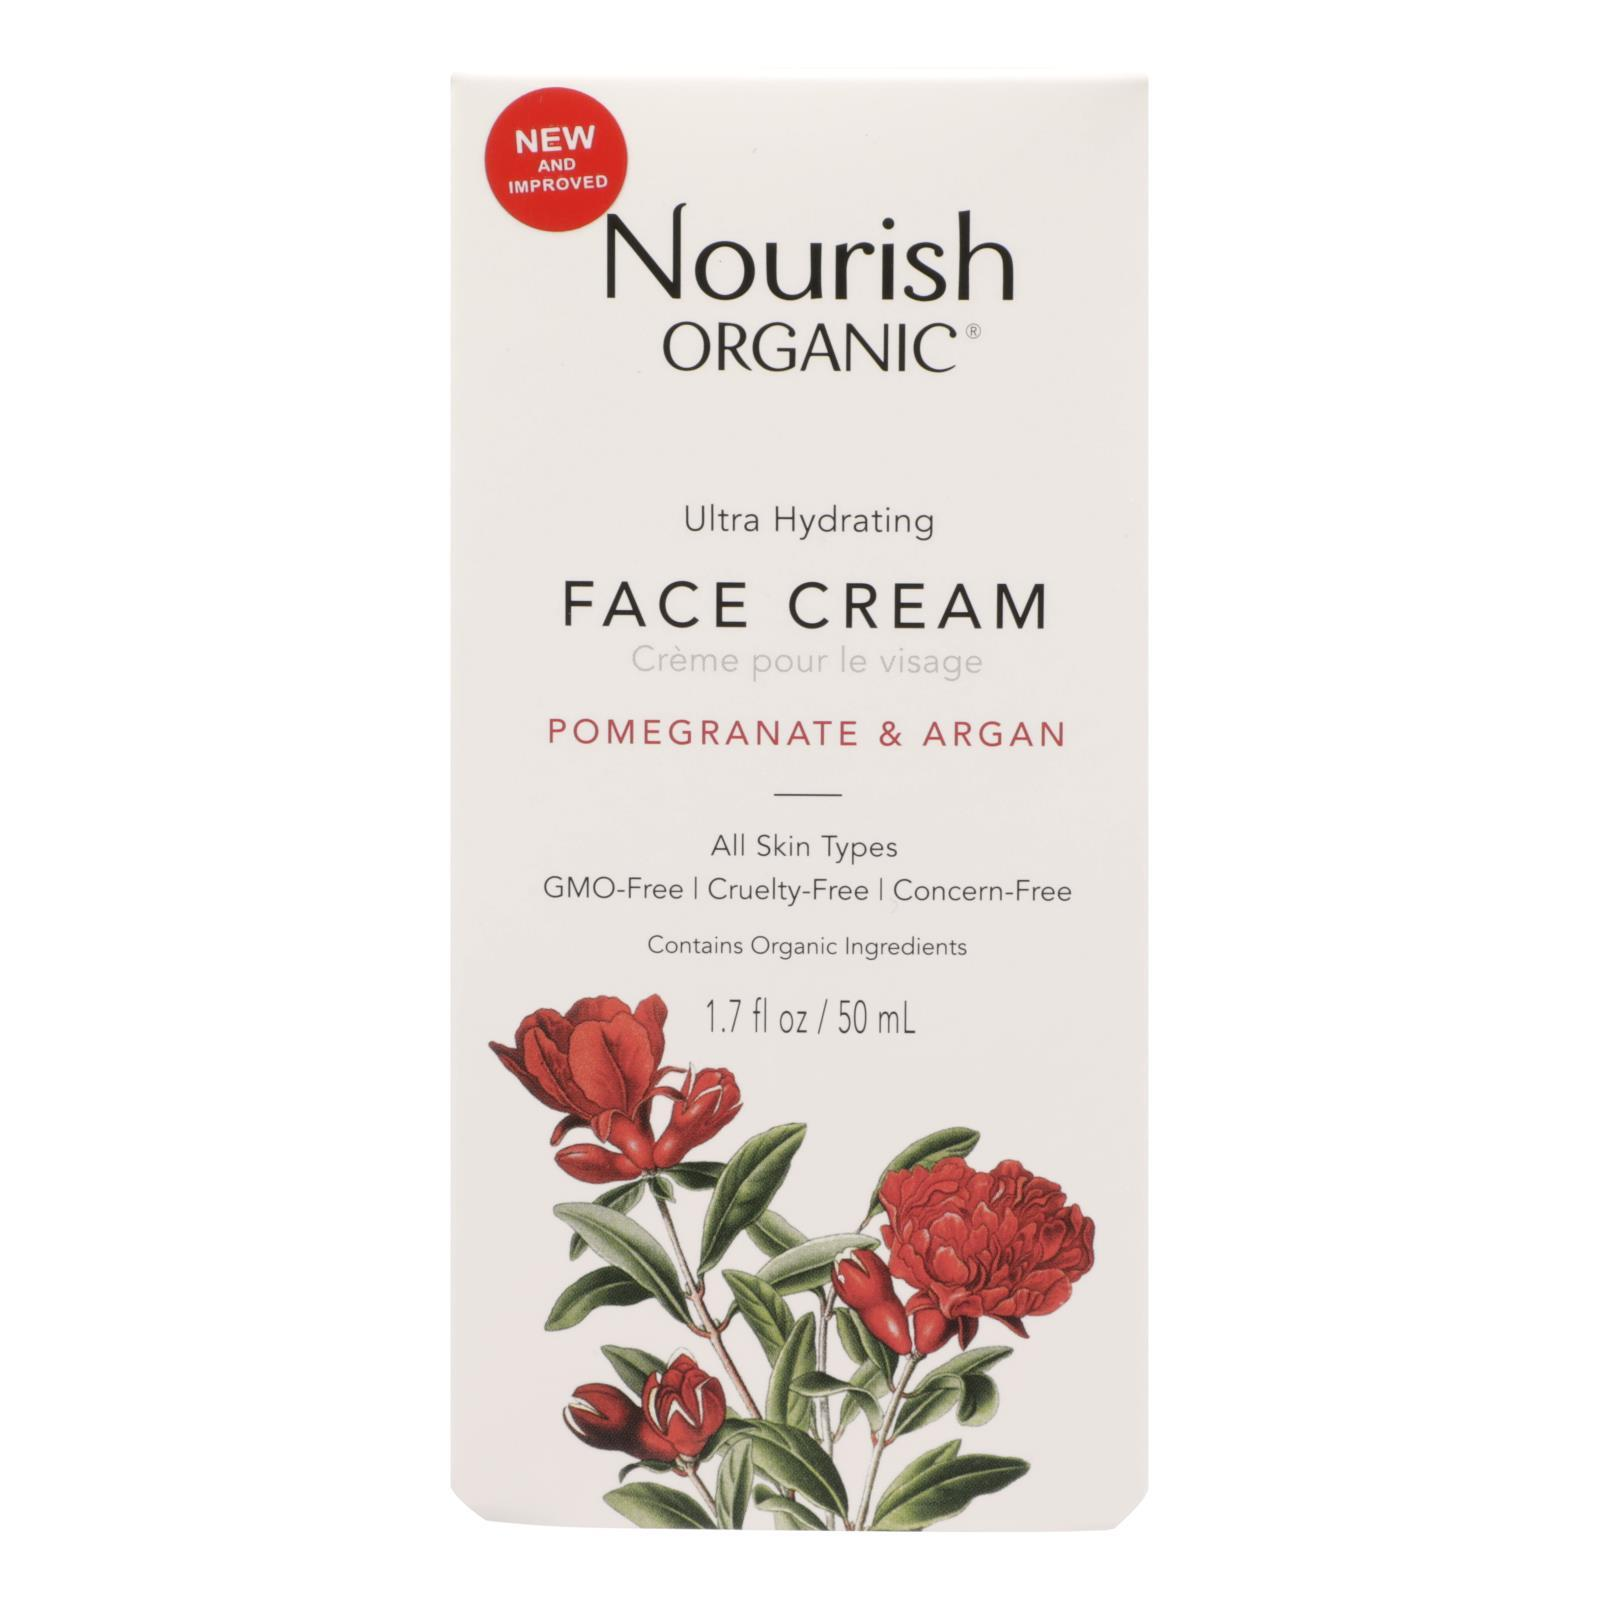 Nourish Facial Cream - Organic - Ultra-hydrating - Argan And Pomegranate - 1.7 Oz - 1 Each - BeeGreen